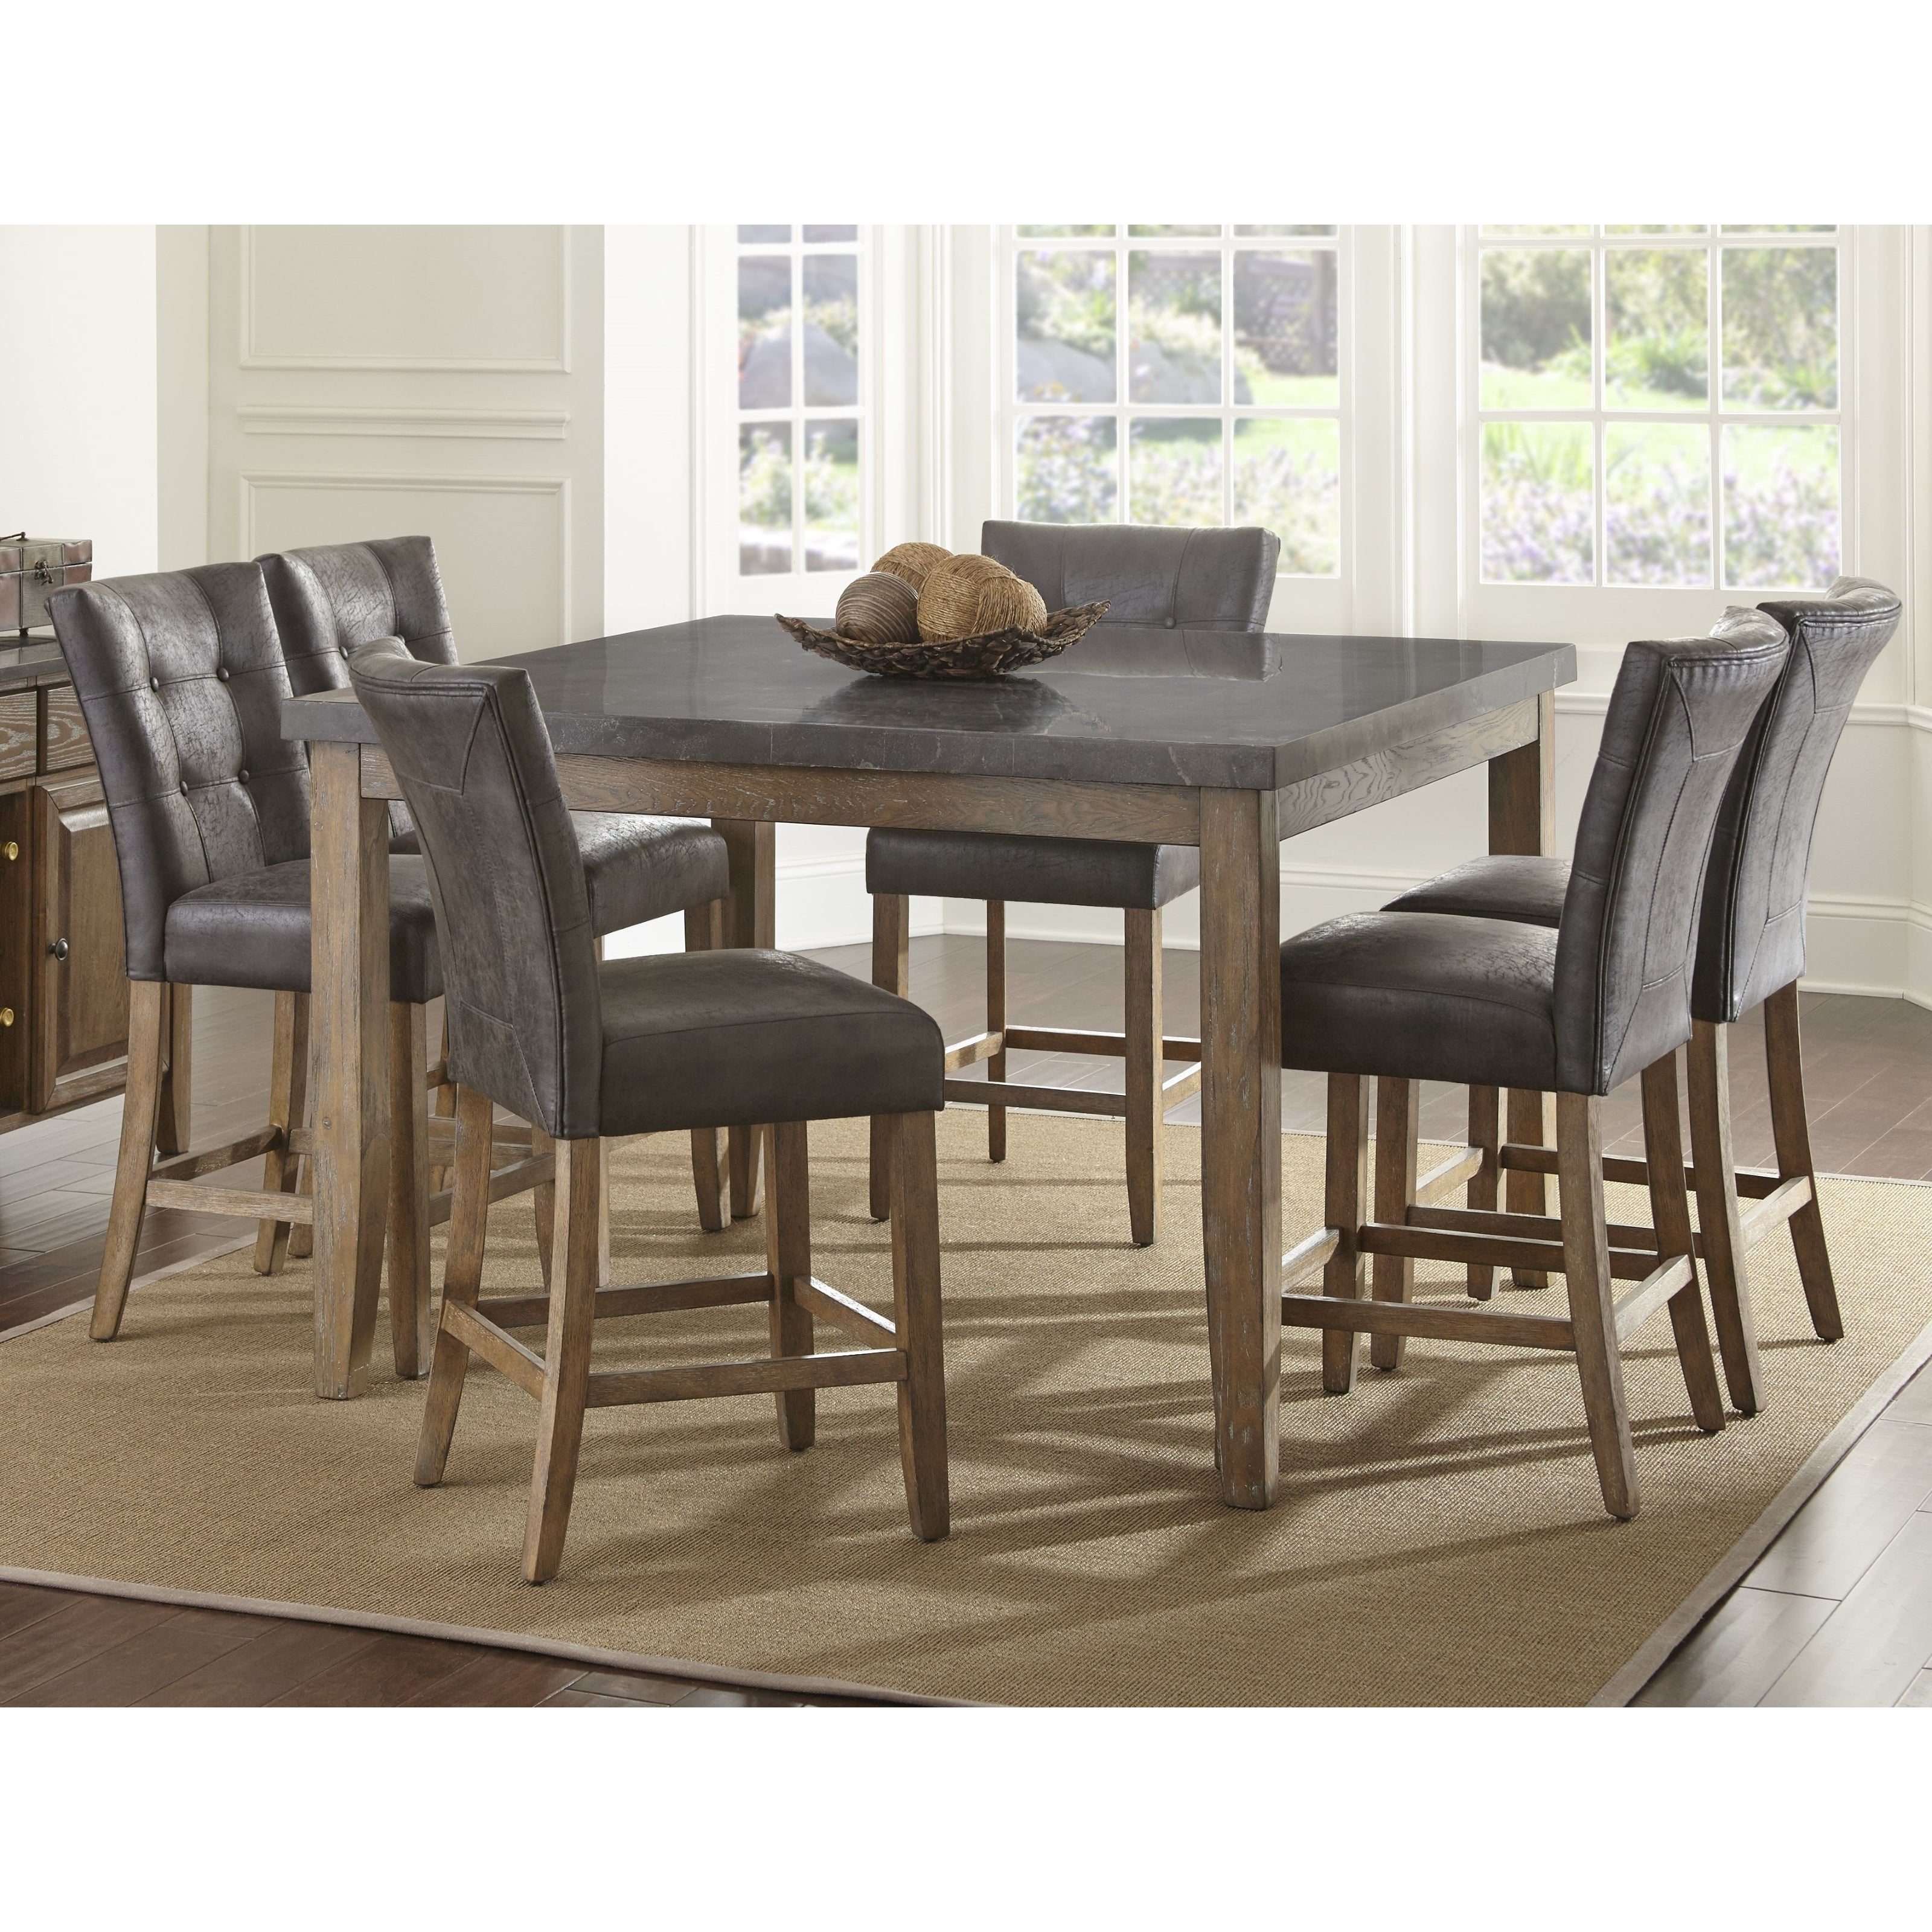 Cargo 5 Piece Dining Sets Regarding Preferred Buy 5 Piece Sets Kitchen & Dining Room Sets Online At Overstock (#6 of 20)